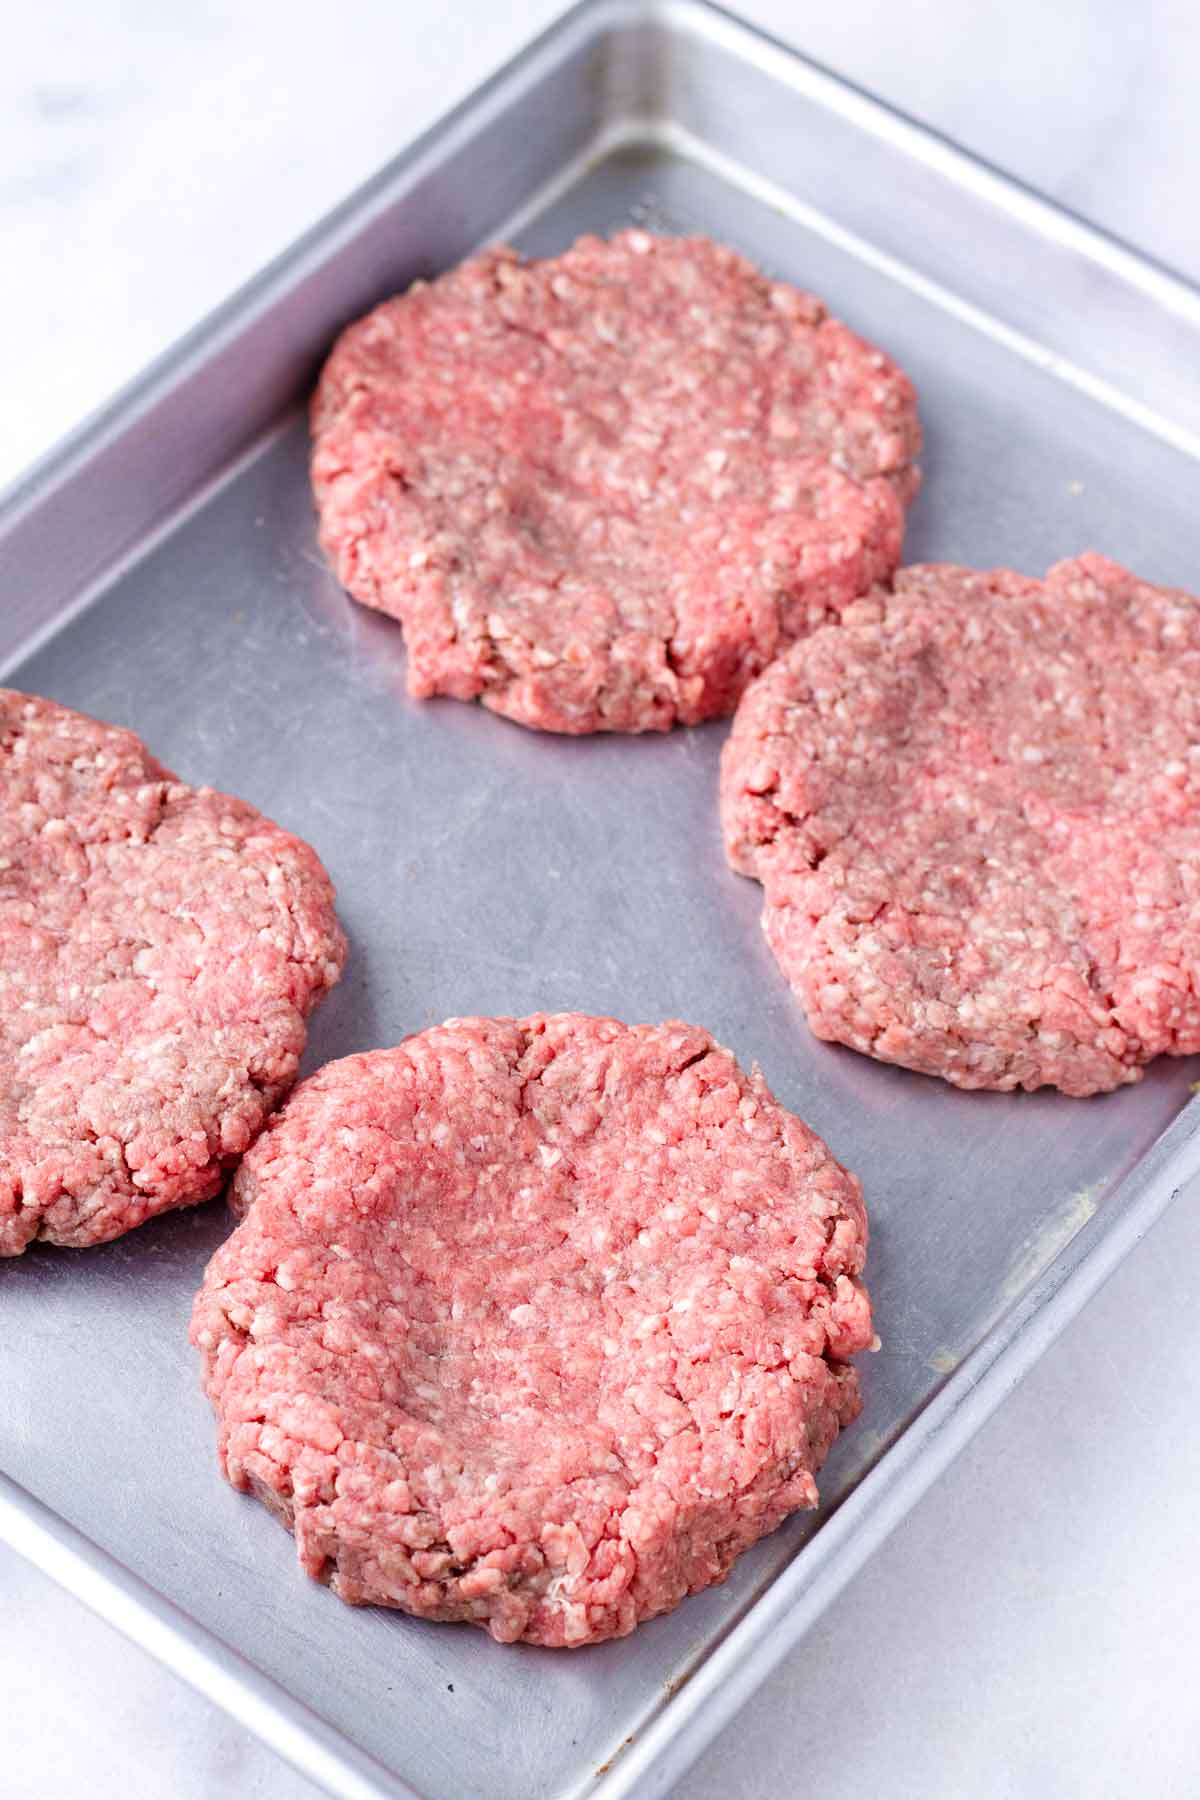 shaped patties with a dent in the middle, arranged on a sheet pan